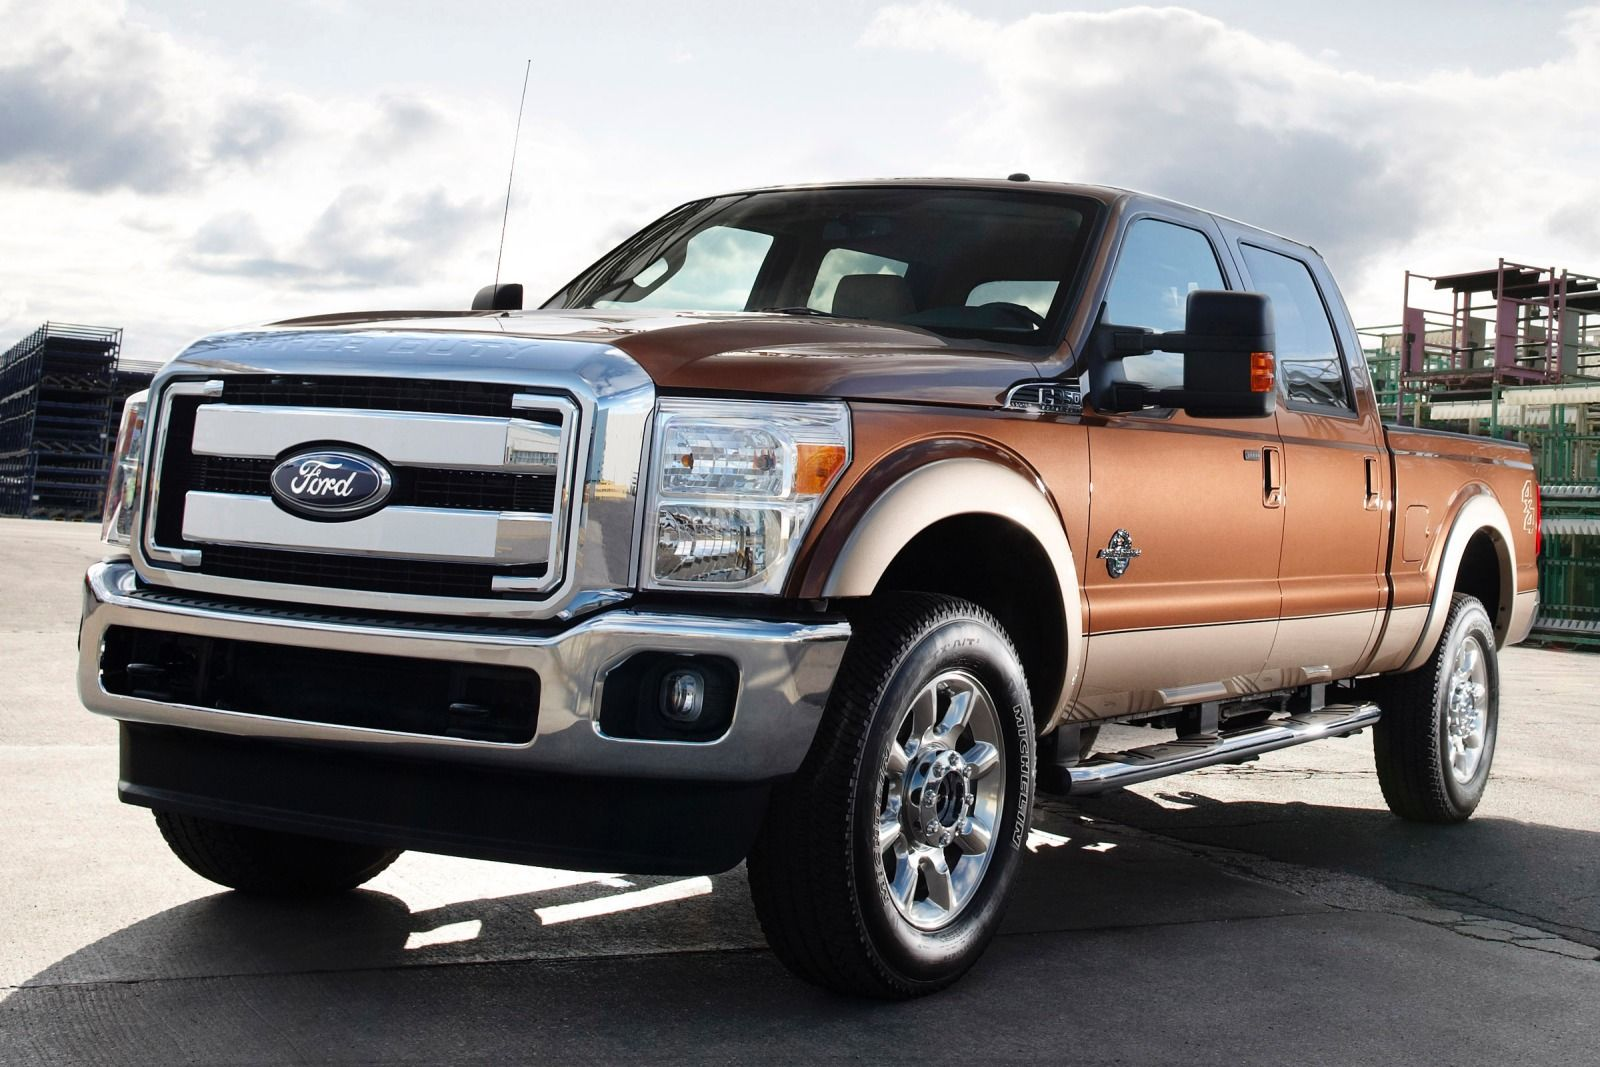 Most Expensive Truck In The World - Ford F-250 4X4 Platinum